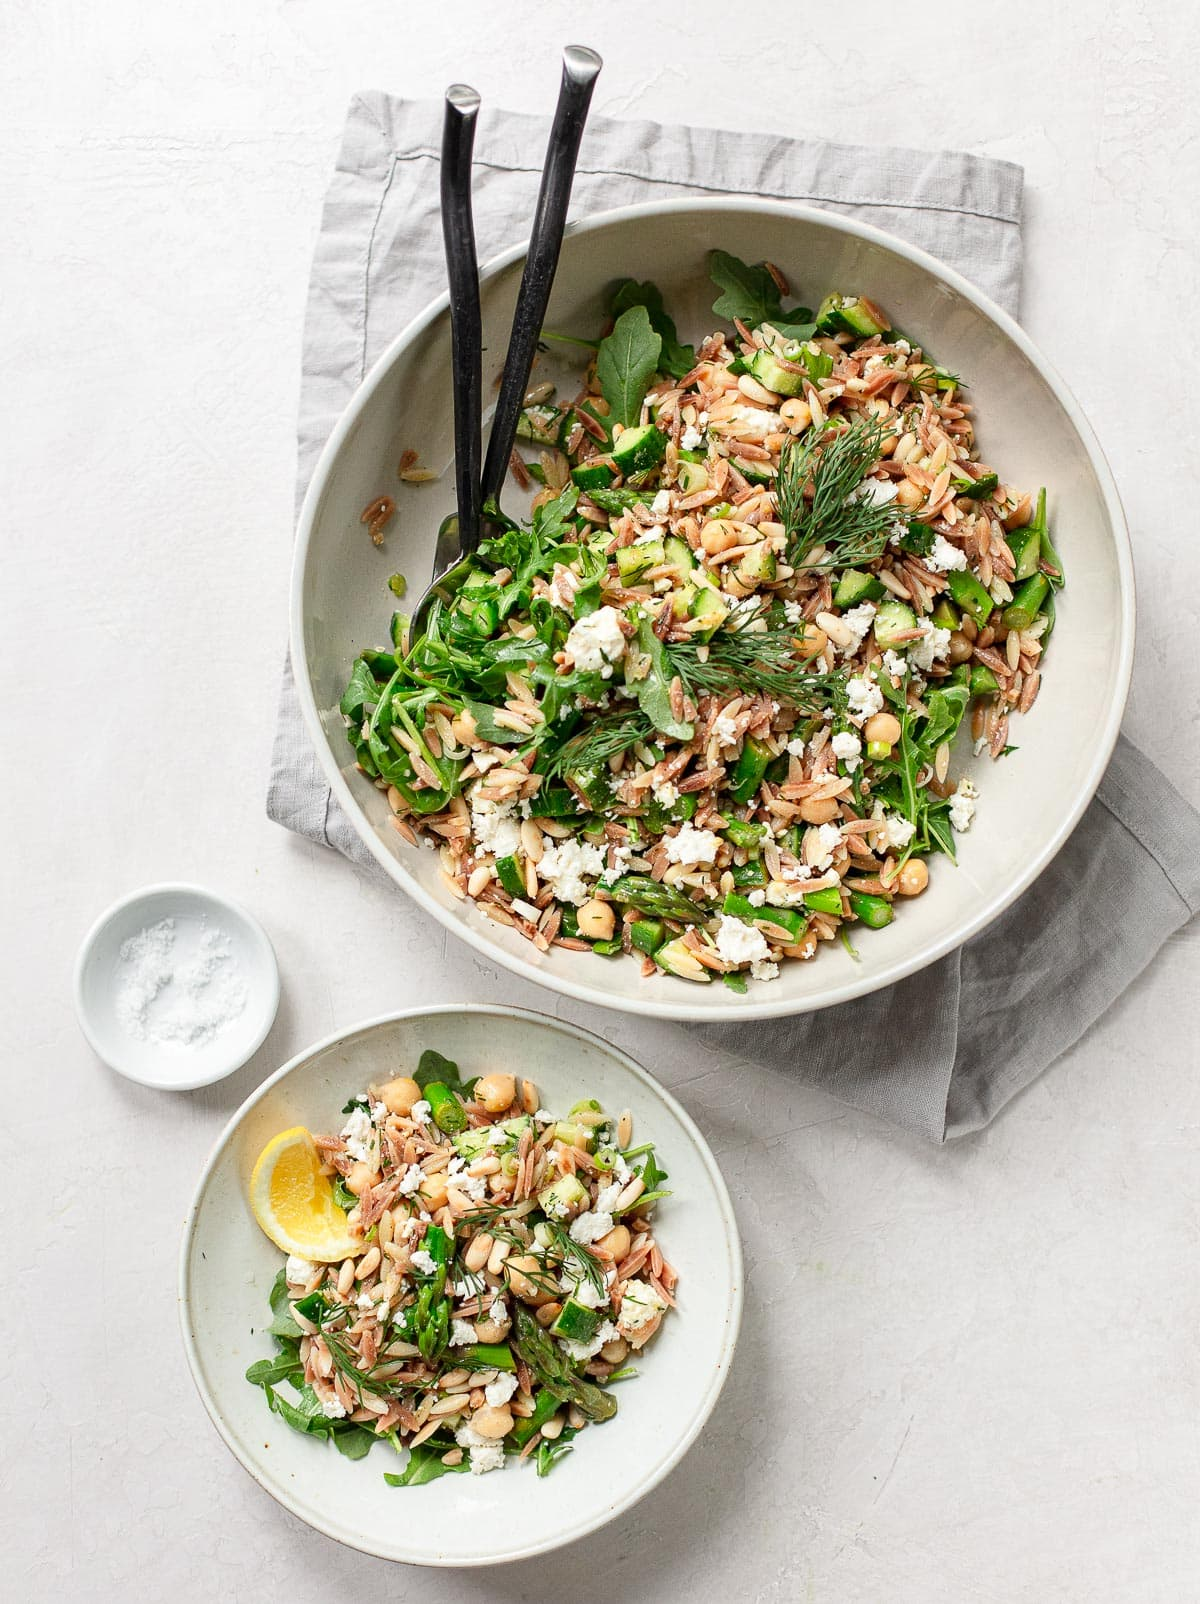 Toasted Orzo Salad with Asparagus, Lemon and Chickpeas